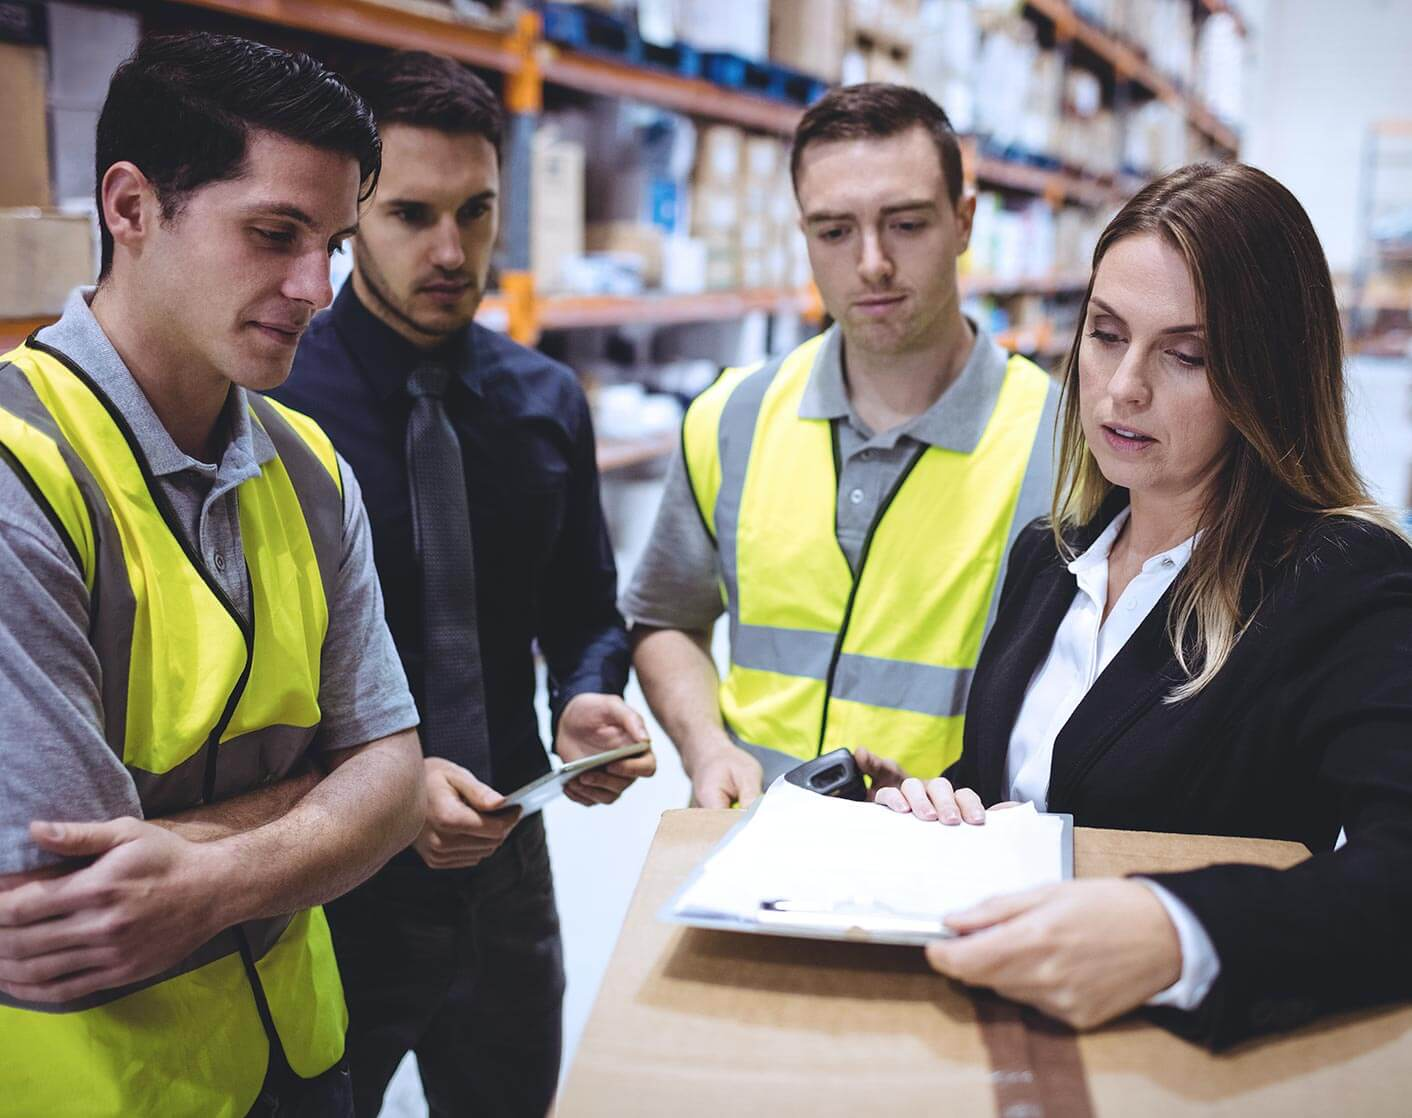 two male warehouse workers talking in a group with a business and business woman holding papers